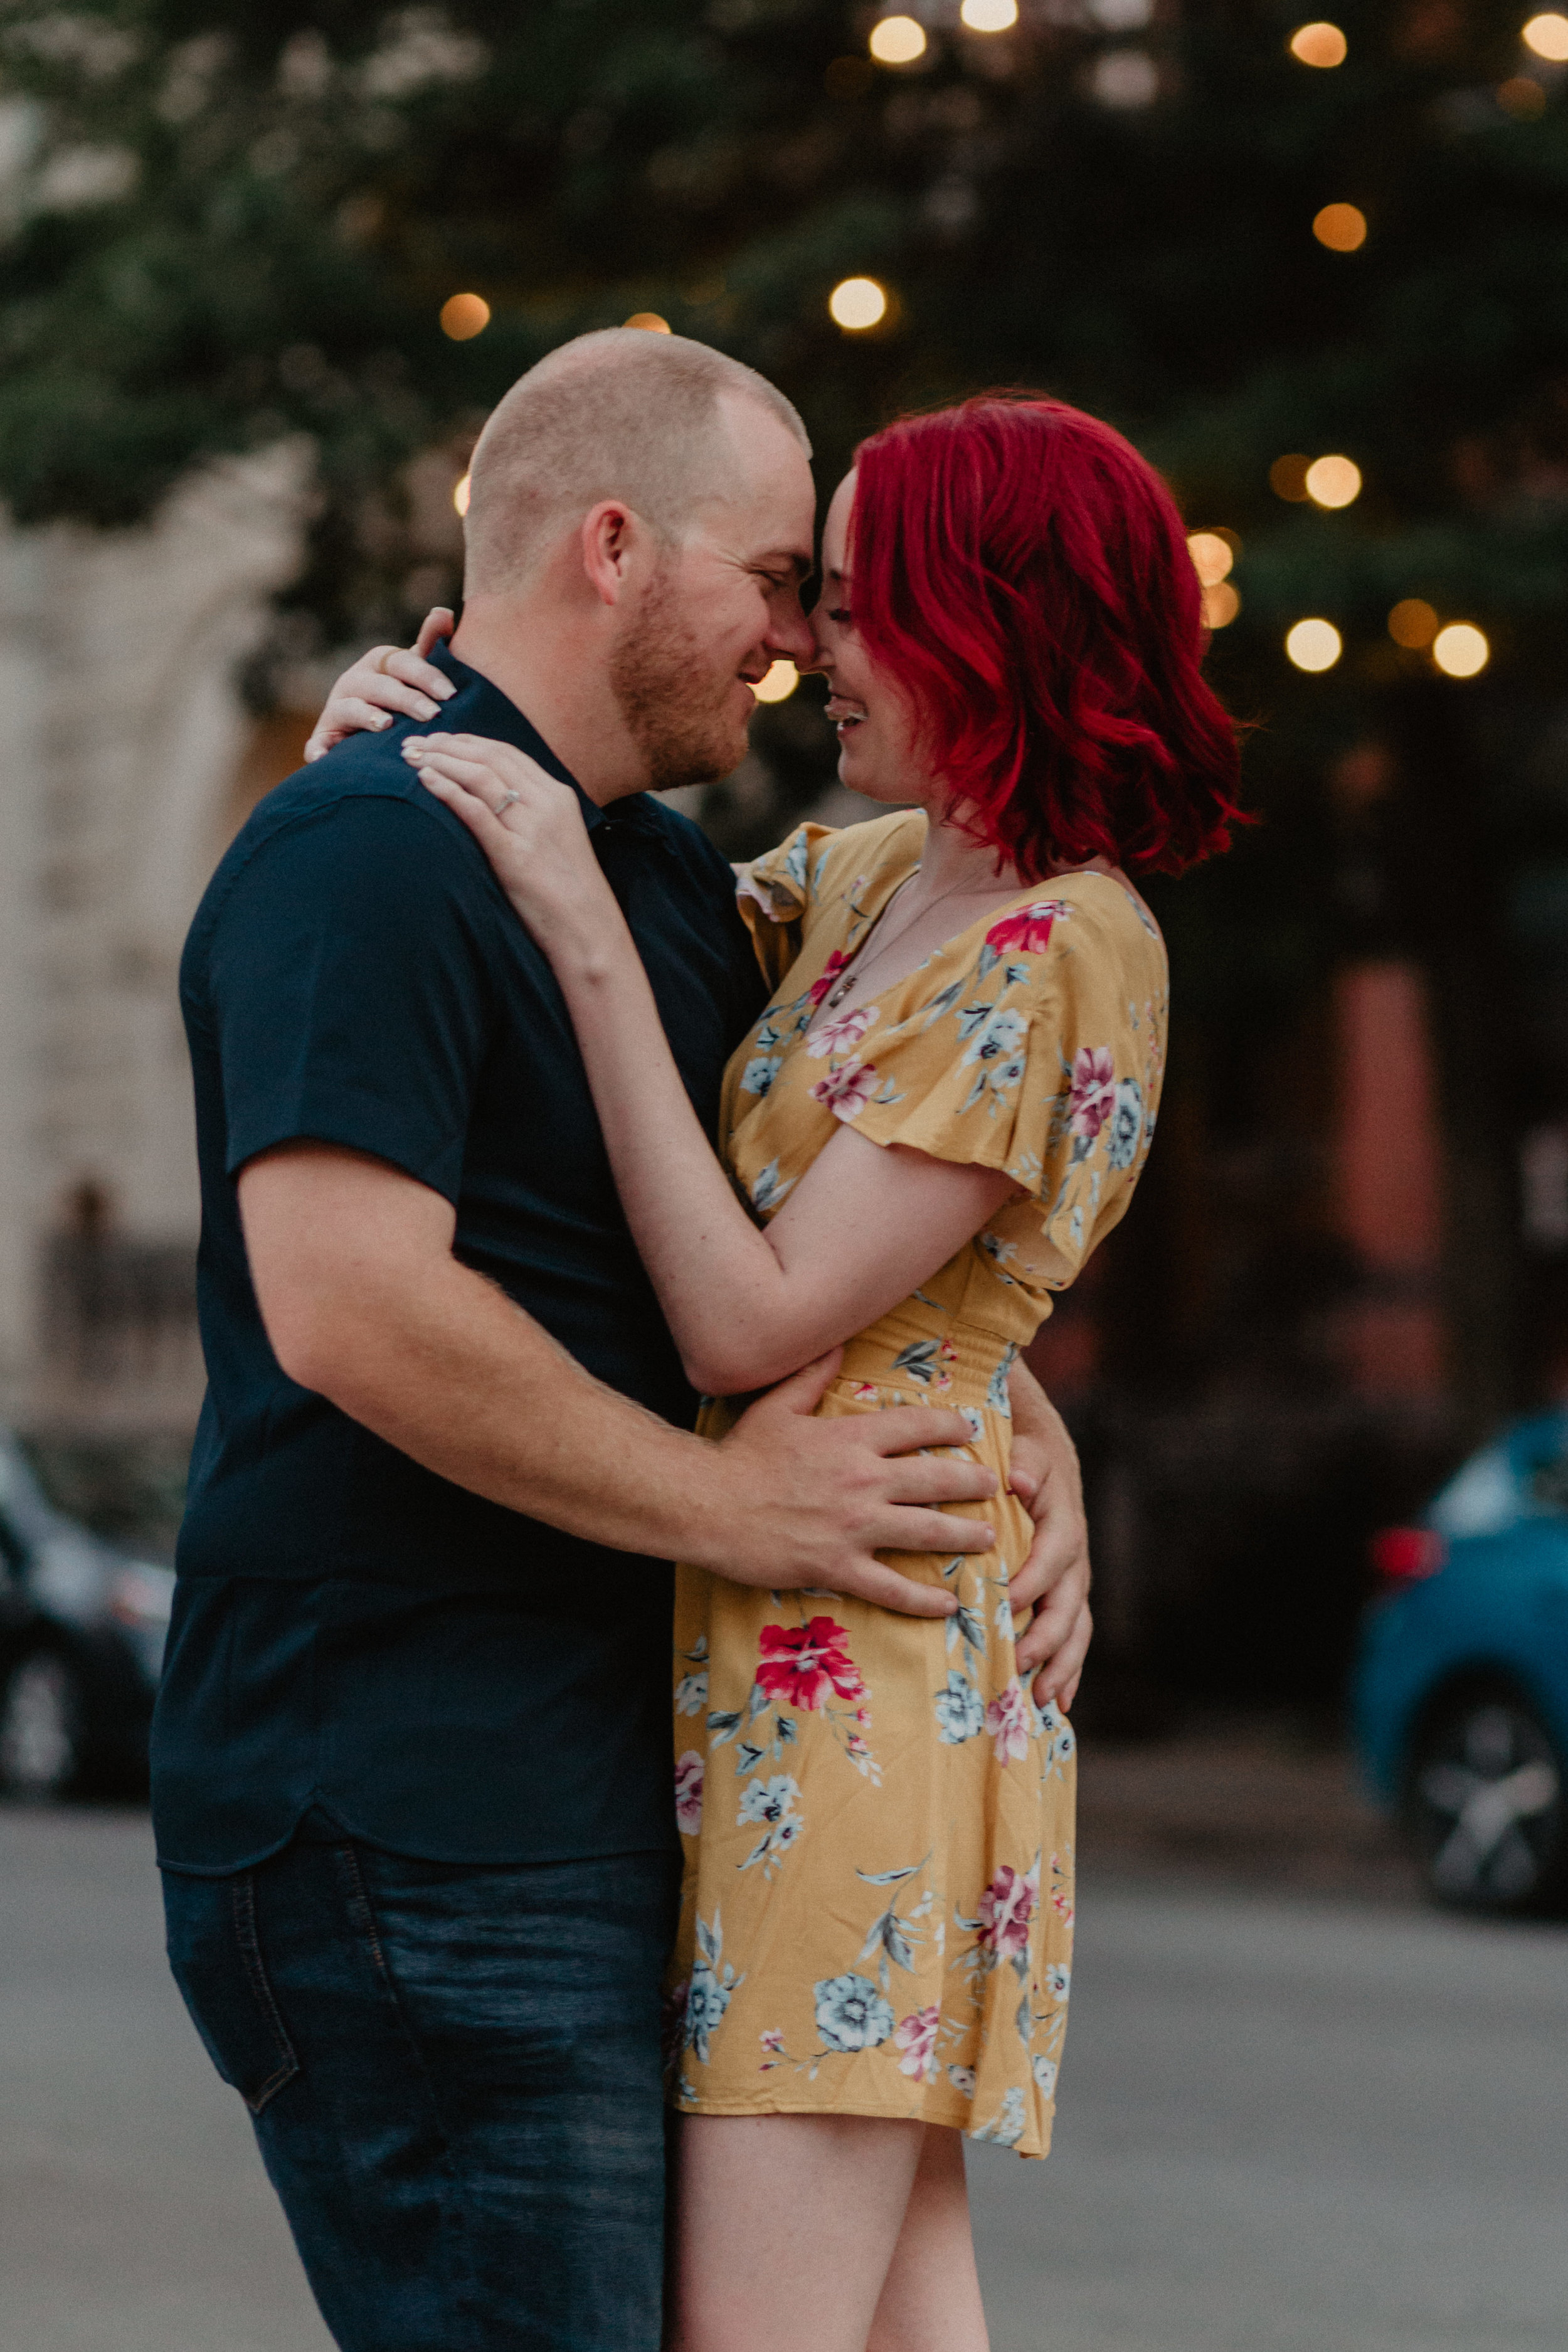 downtown-troy-engagement-session-35.jpg